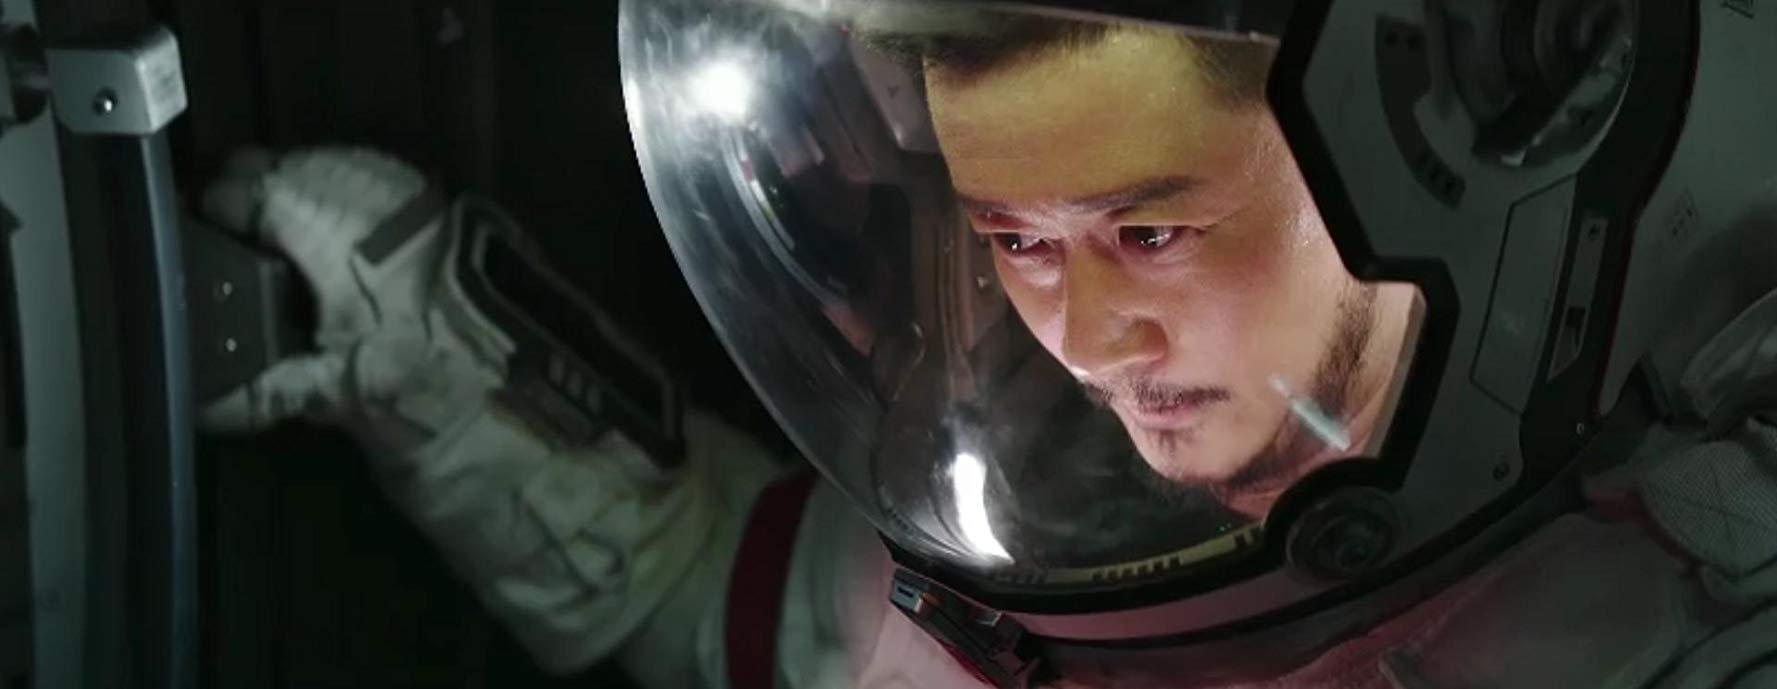 The Wandering Earth (Liu Lang Di Qiu) [Sub: Eng]